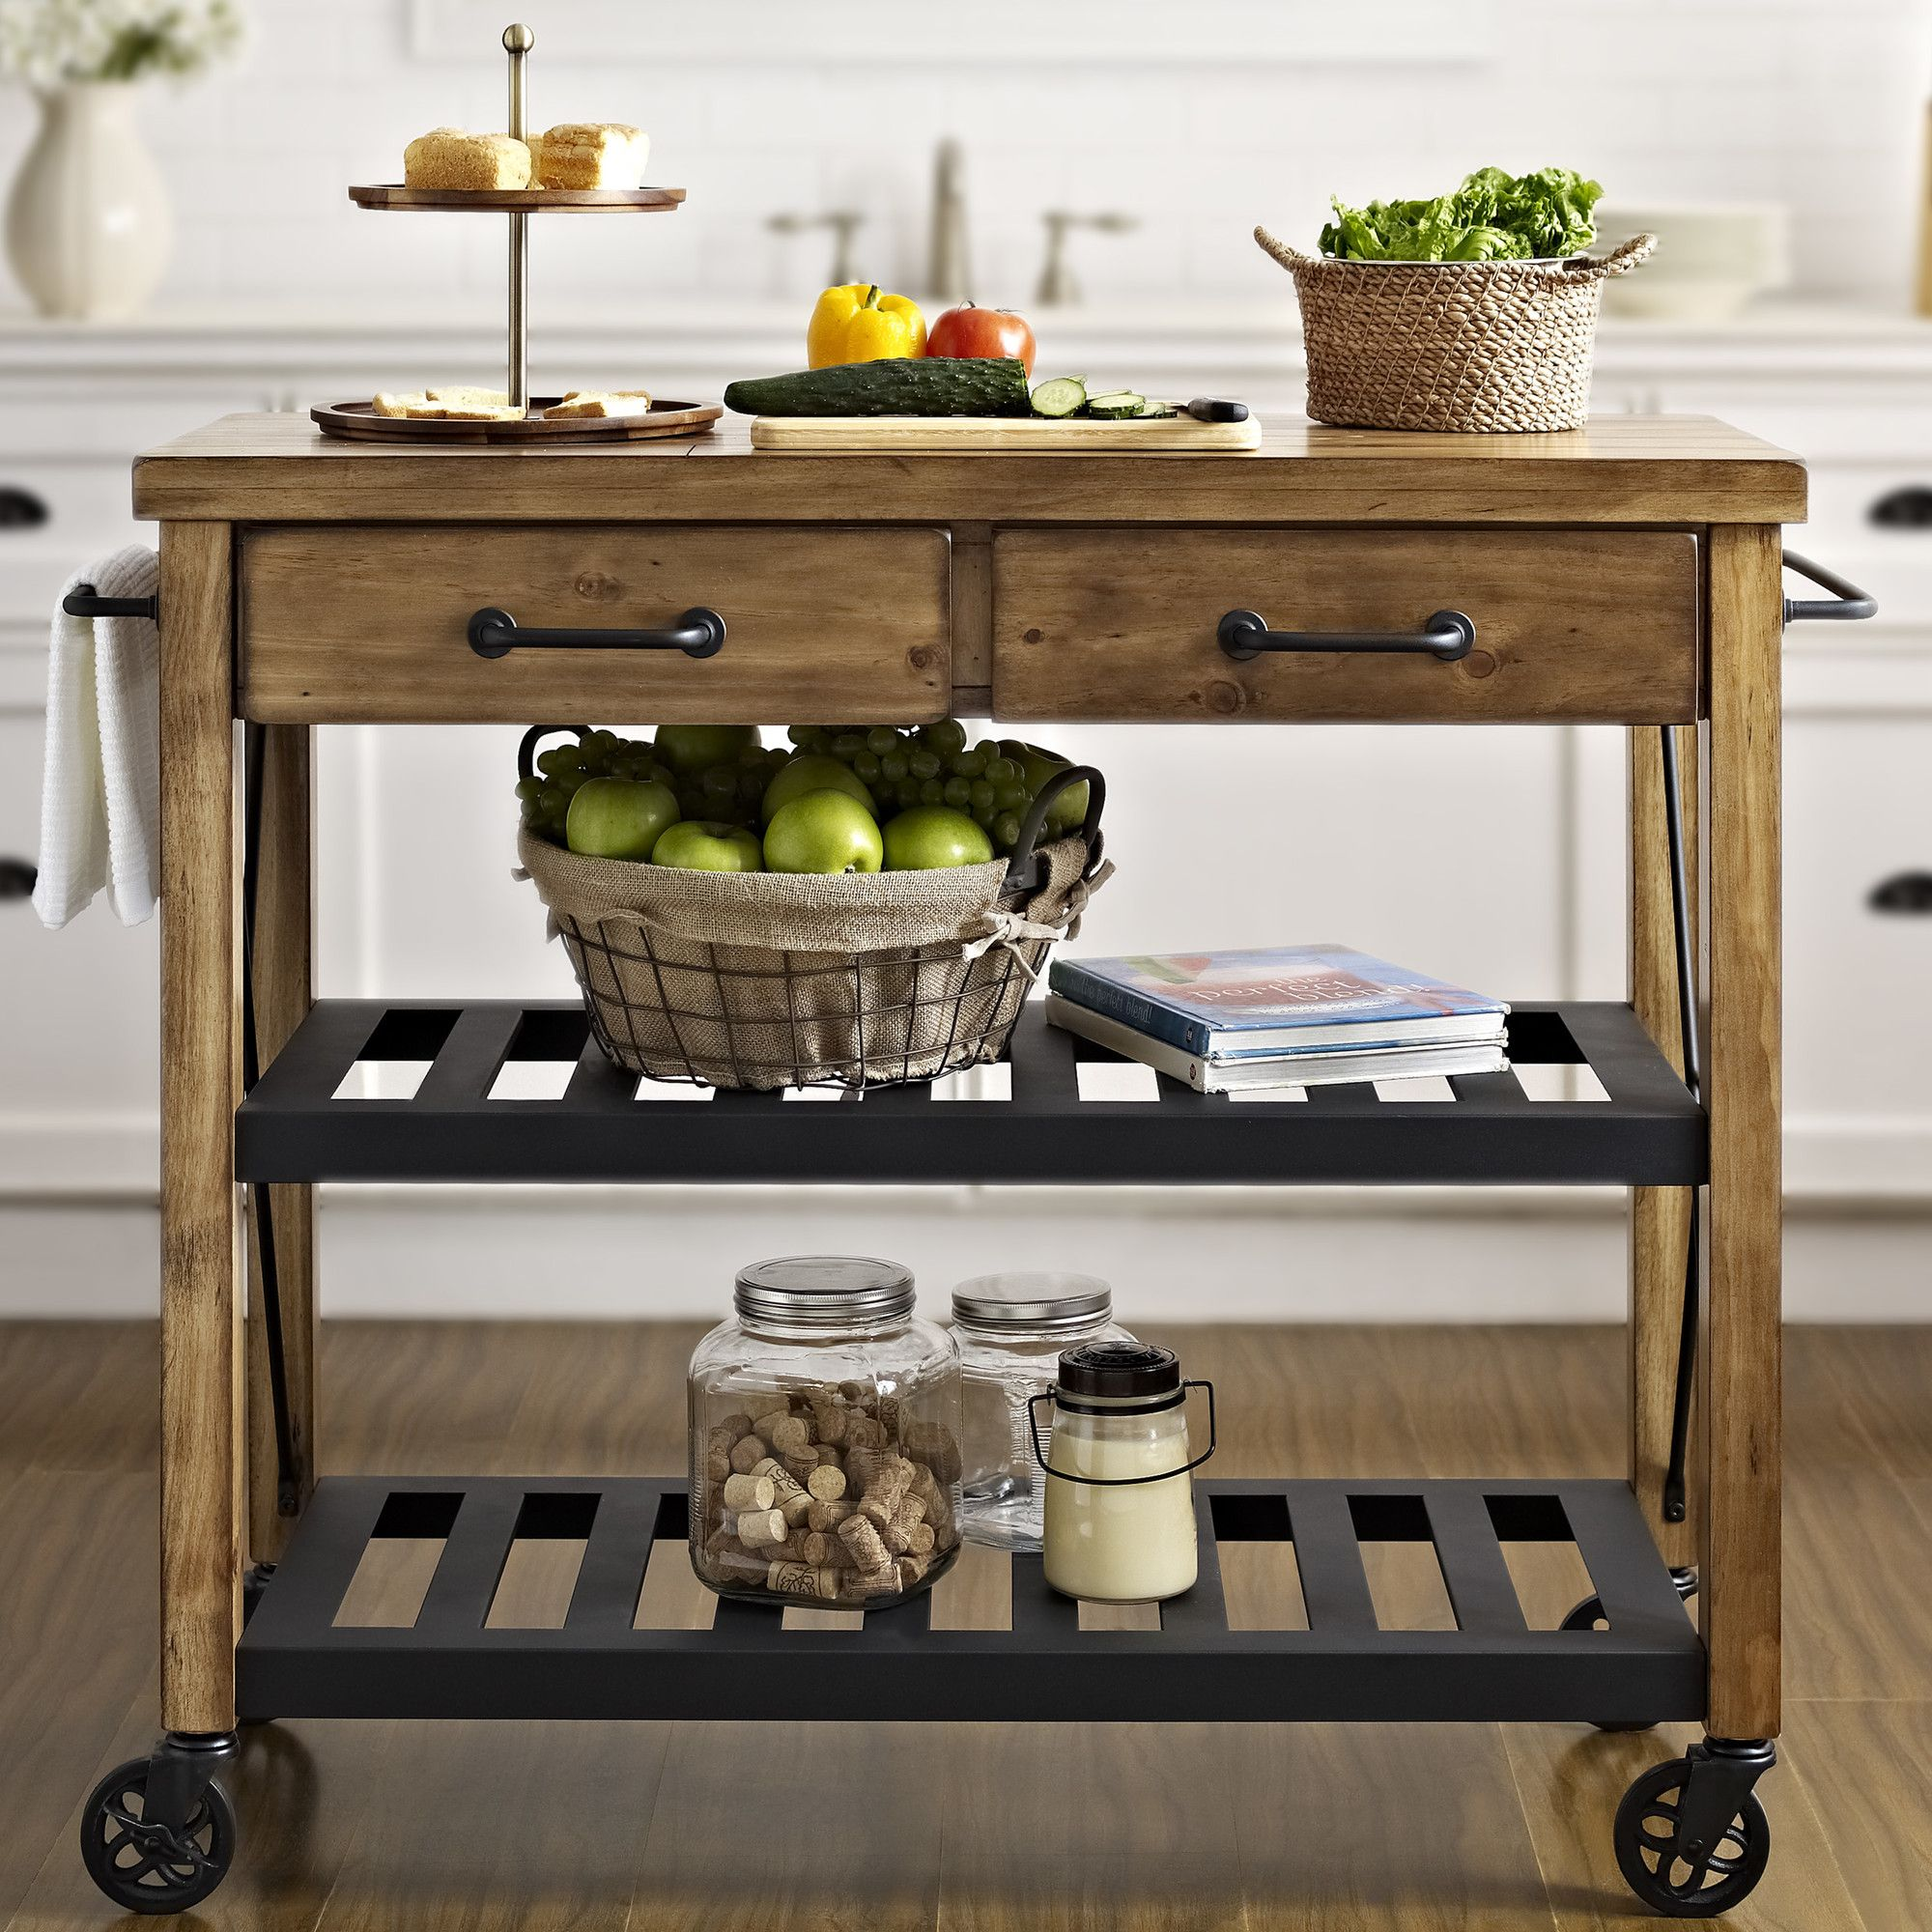 Find This Pin And More On Kitchen Islands Cart Inspiration